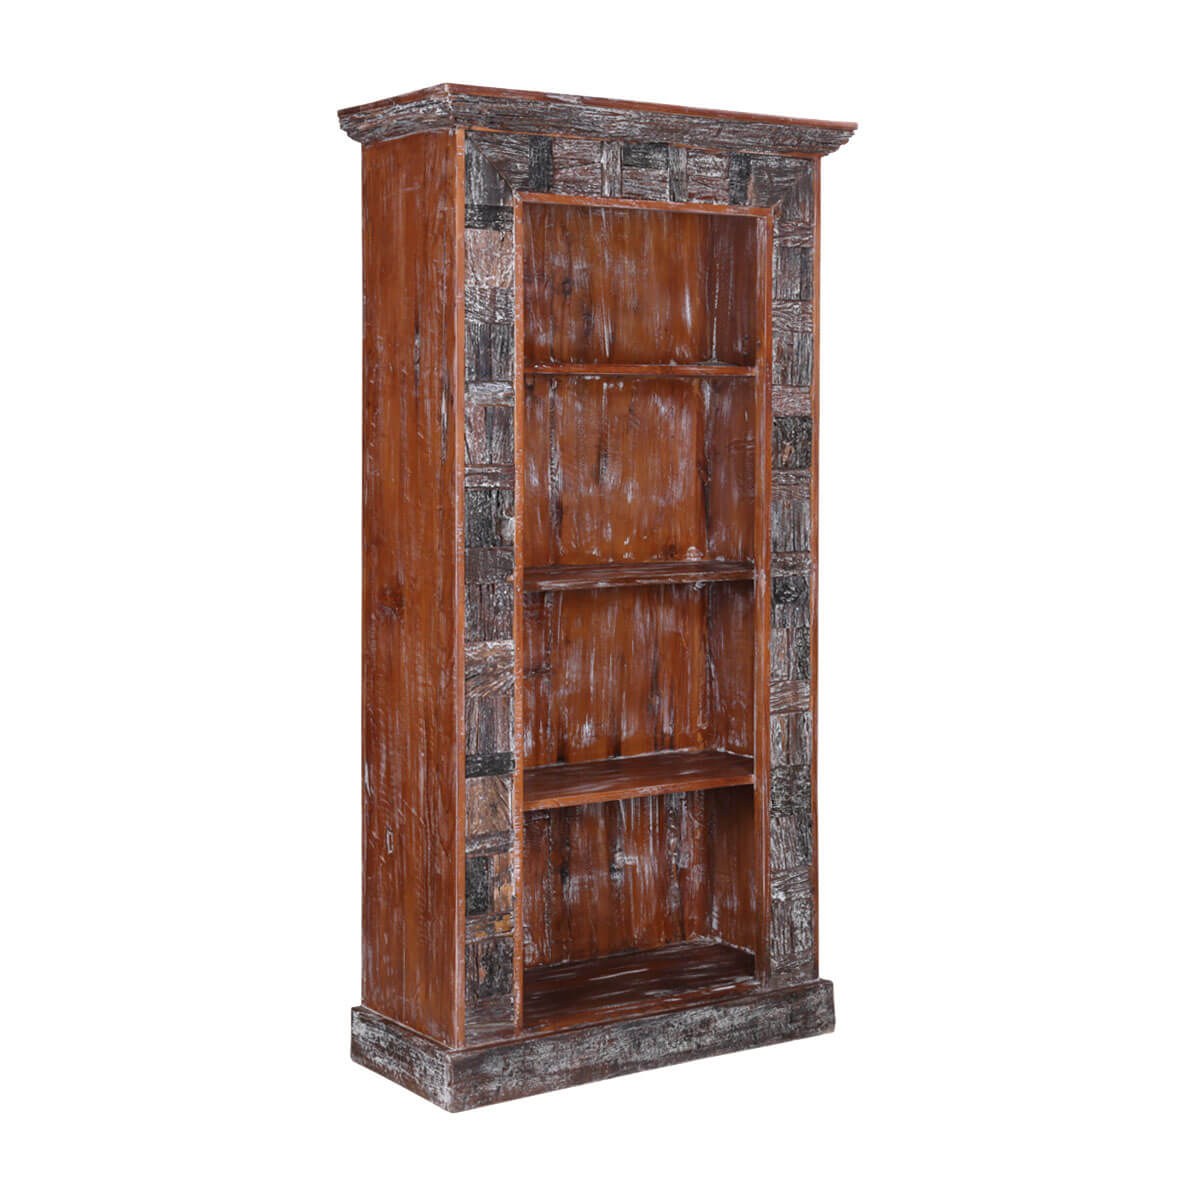 Boone Hand-Carved Reclaimed Wood 3-Shelf Rustic Bookcase